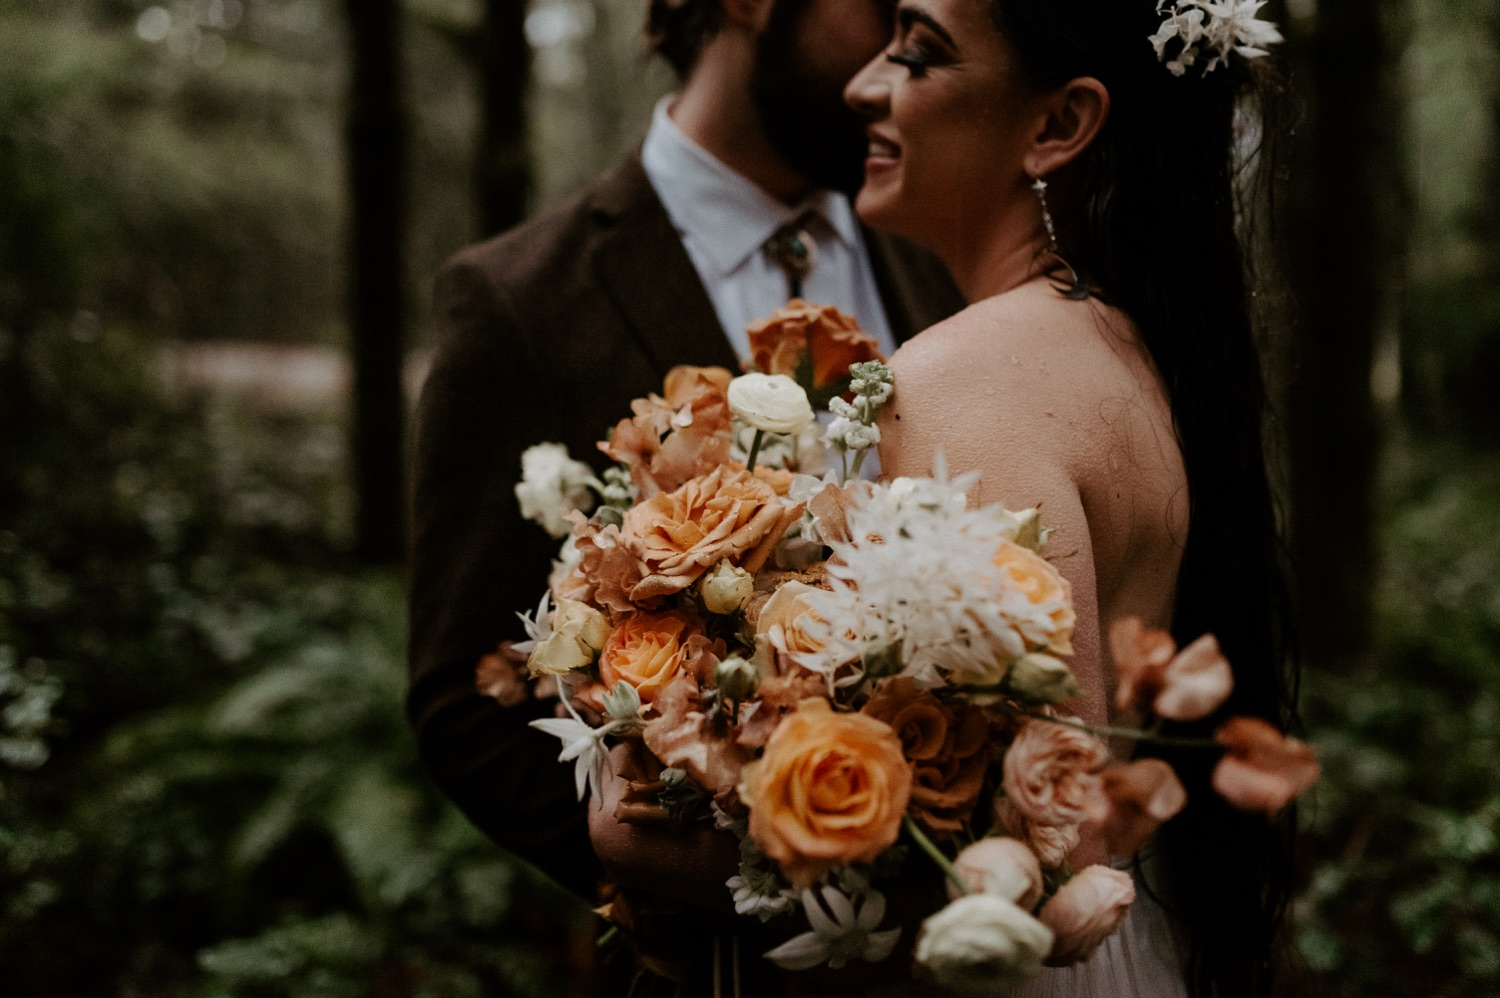 The Woodlands House Sandy Oregon Elopement Portland Elopement Photographer PNW Adventurous Elopement Anais Possamai Photography 041